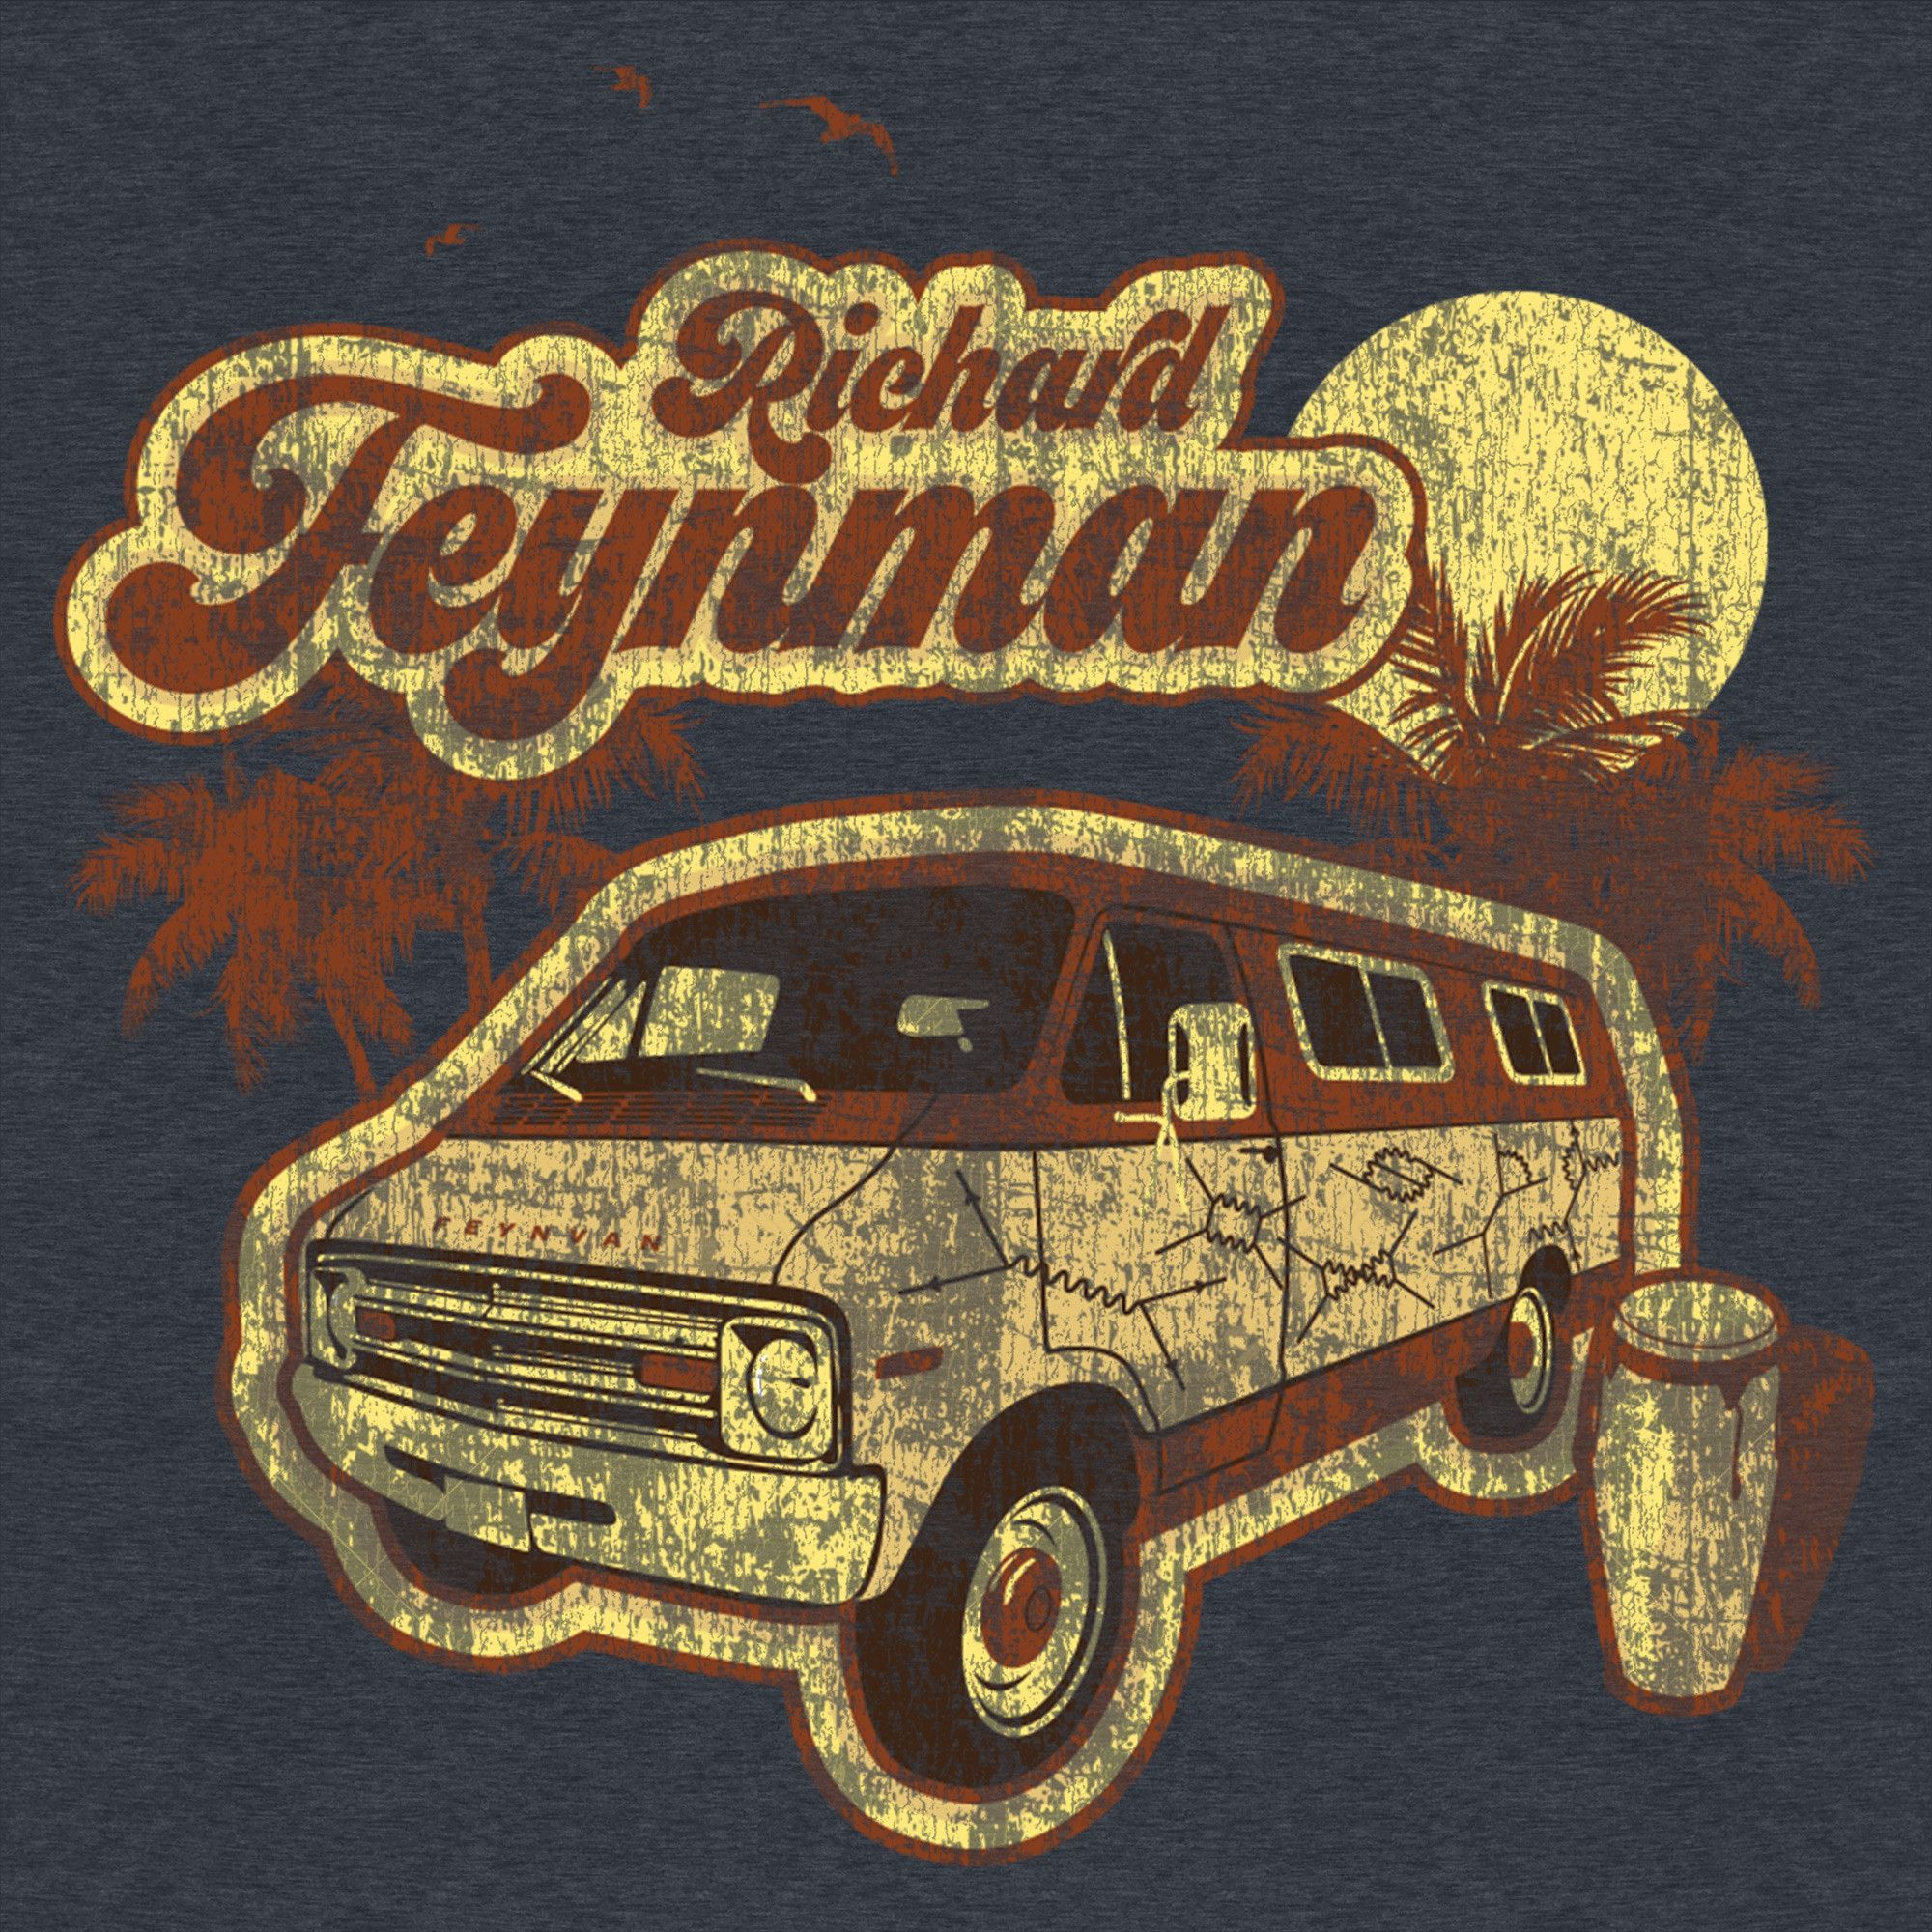 This great vintage t-shirt pays homage to the renaissance man Richard Feynman.  He a passion and curiosity for life and science lead him to be a scientist, teacher, raconteur, musician and more. Our tee shows Richard Feynman's Van-famous for its painted design.  #UnderRepped #TShirt #scienc